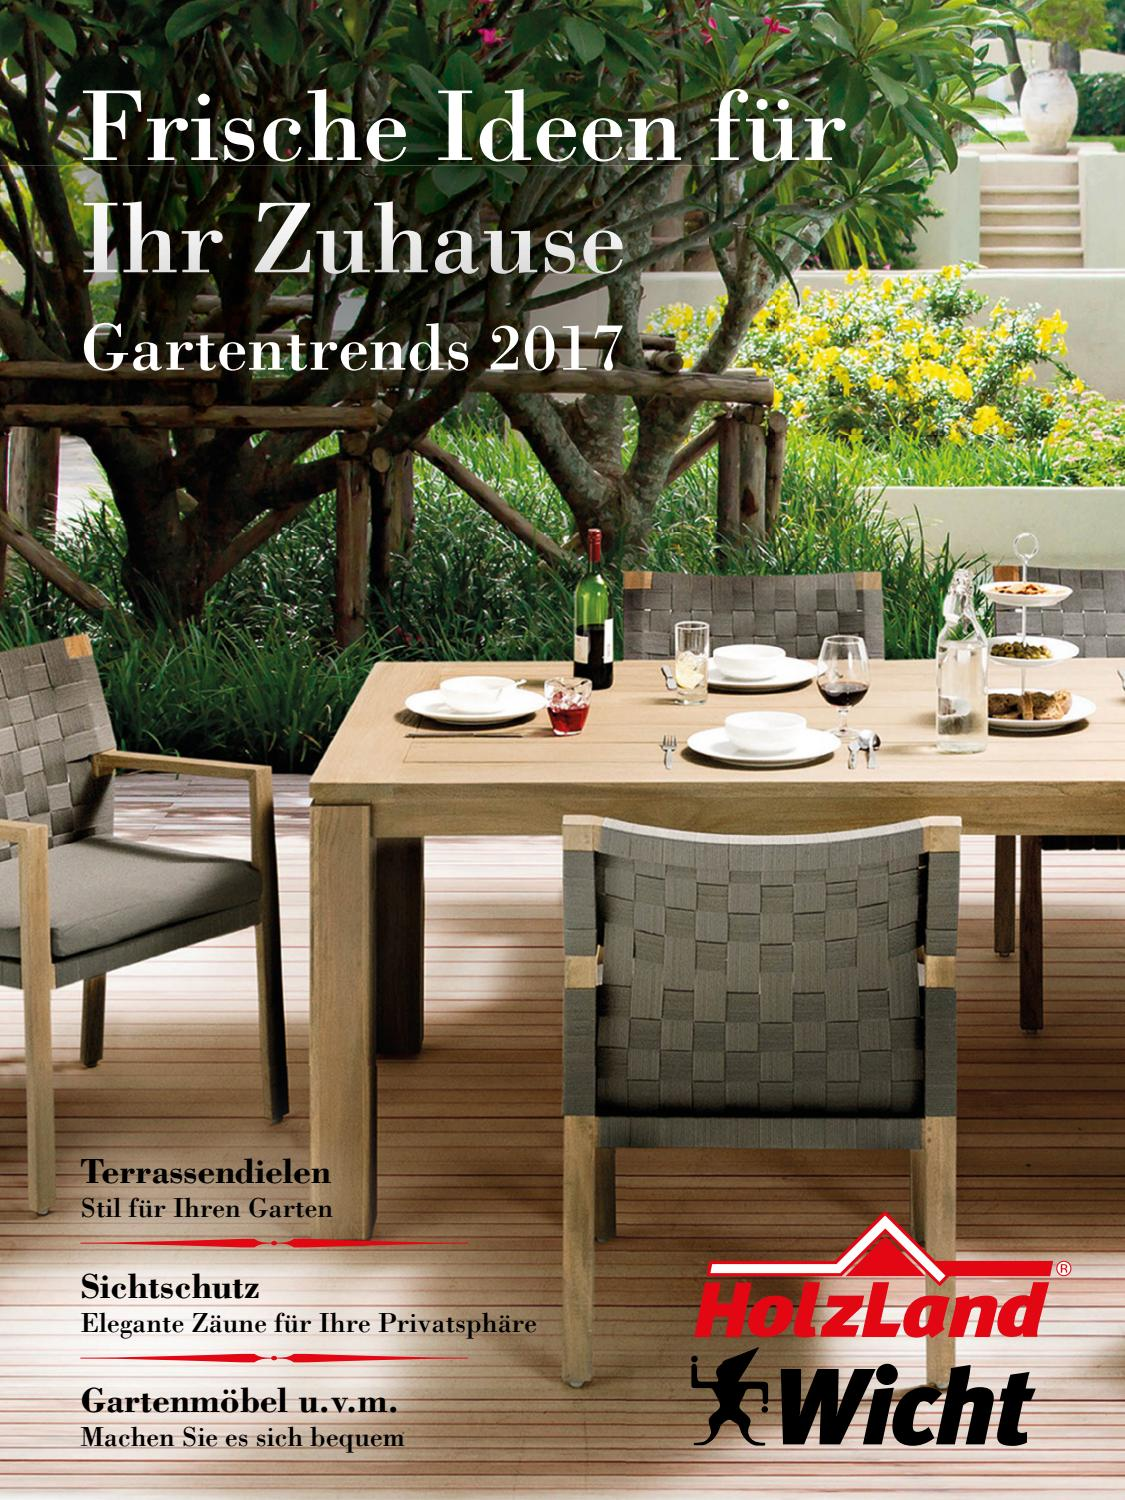 Wpc Terrassendielen Extrabreit Holzland Wicht Outdoor 2017 By Kaiser Design Issuu